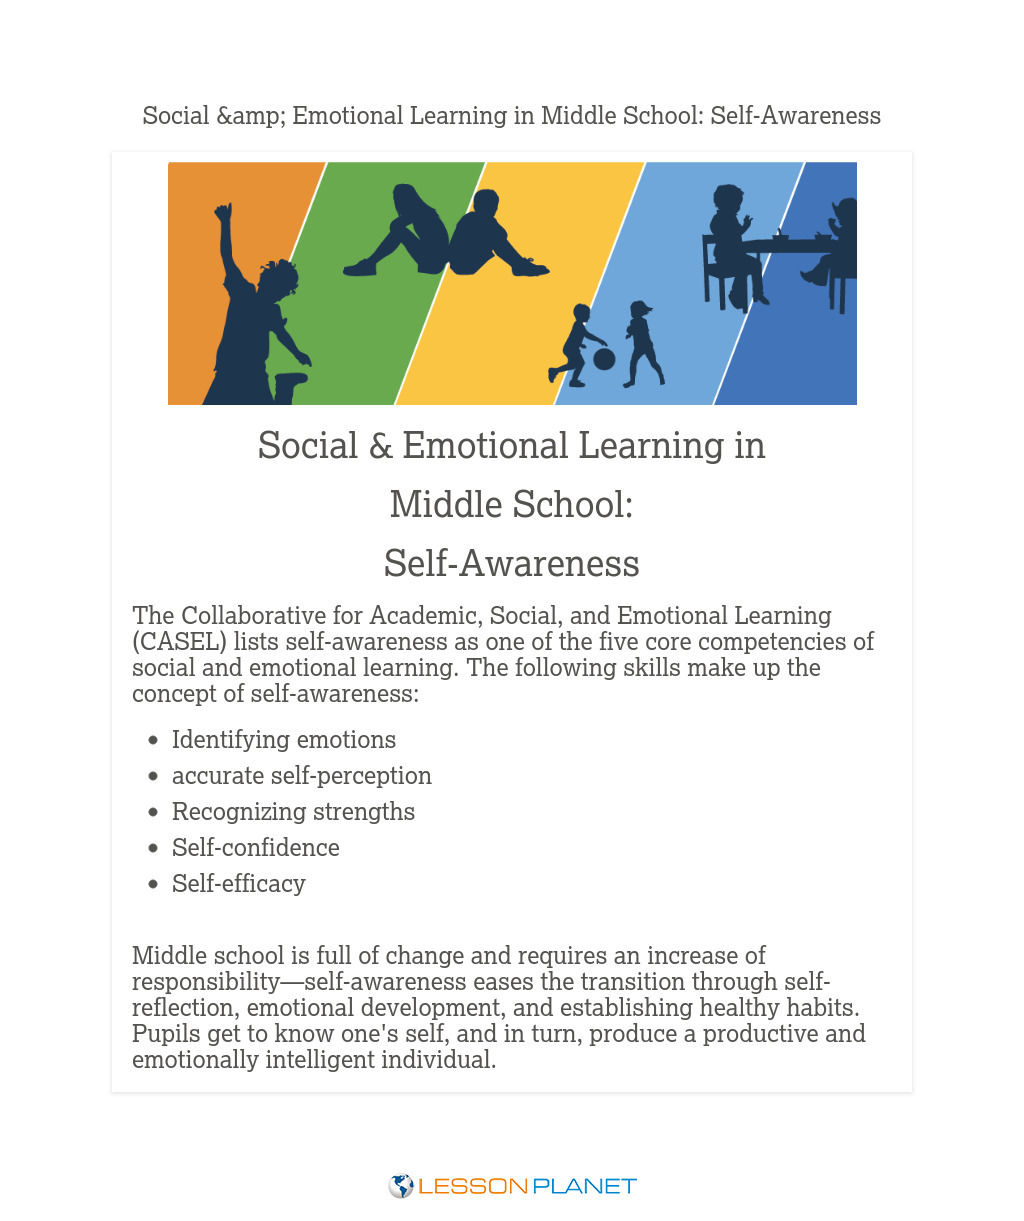 Social & Emotional Learning in Middle School: Self-Awareness